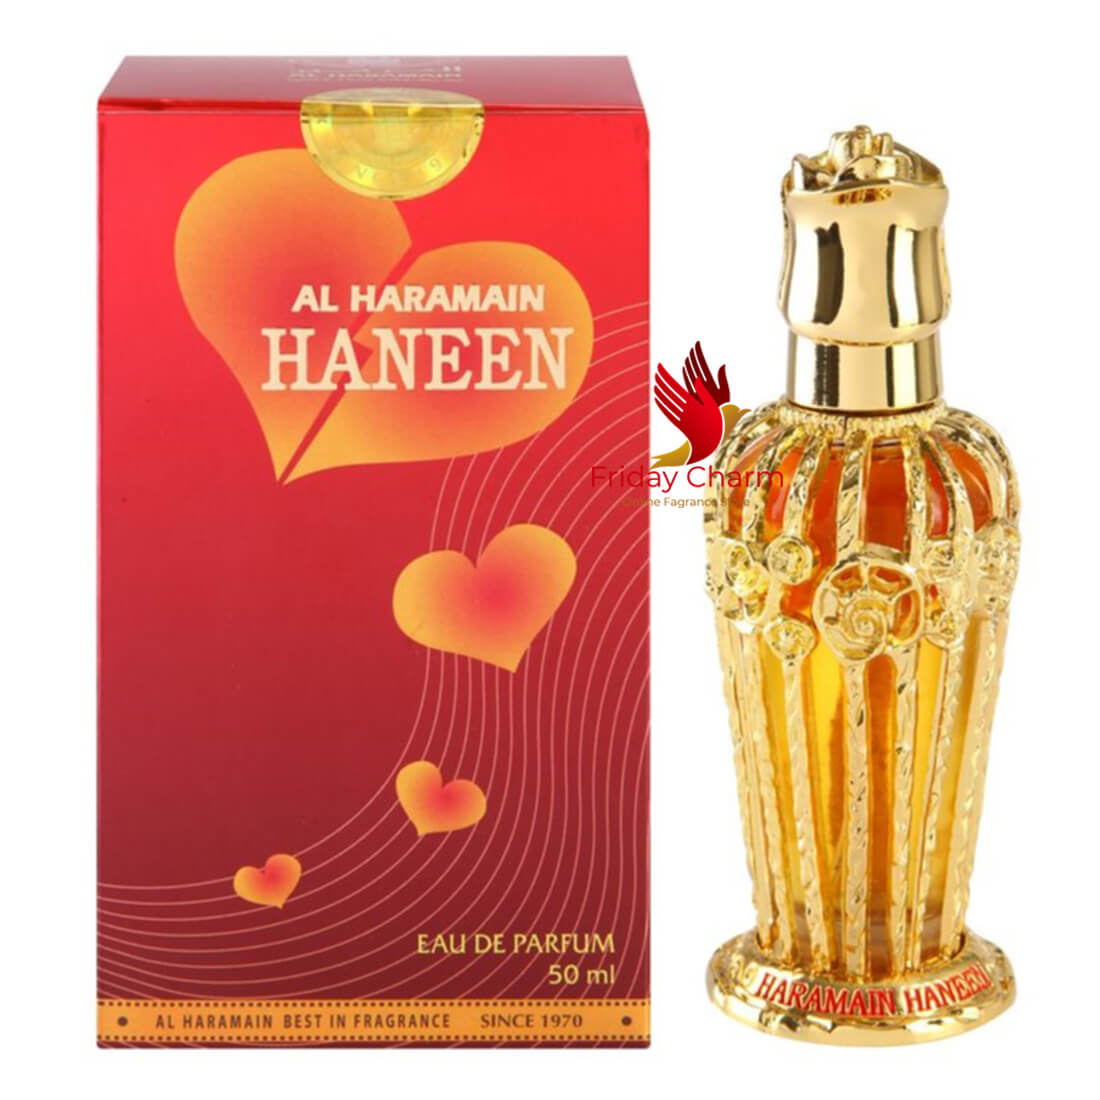 Al Haramain Haneen Perfume Spray - 50 ml